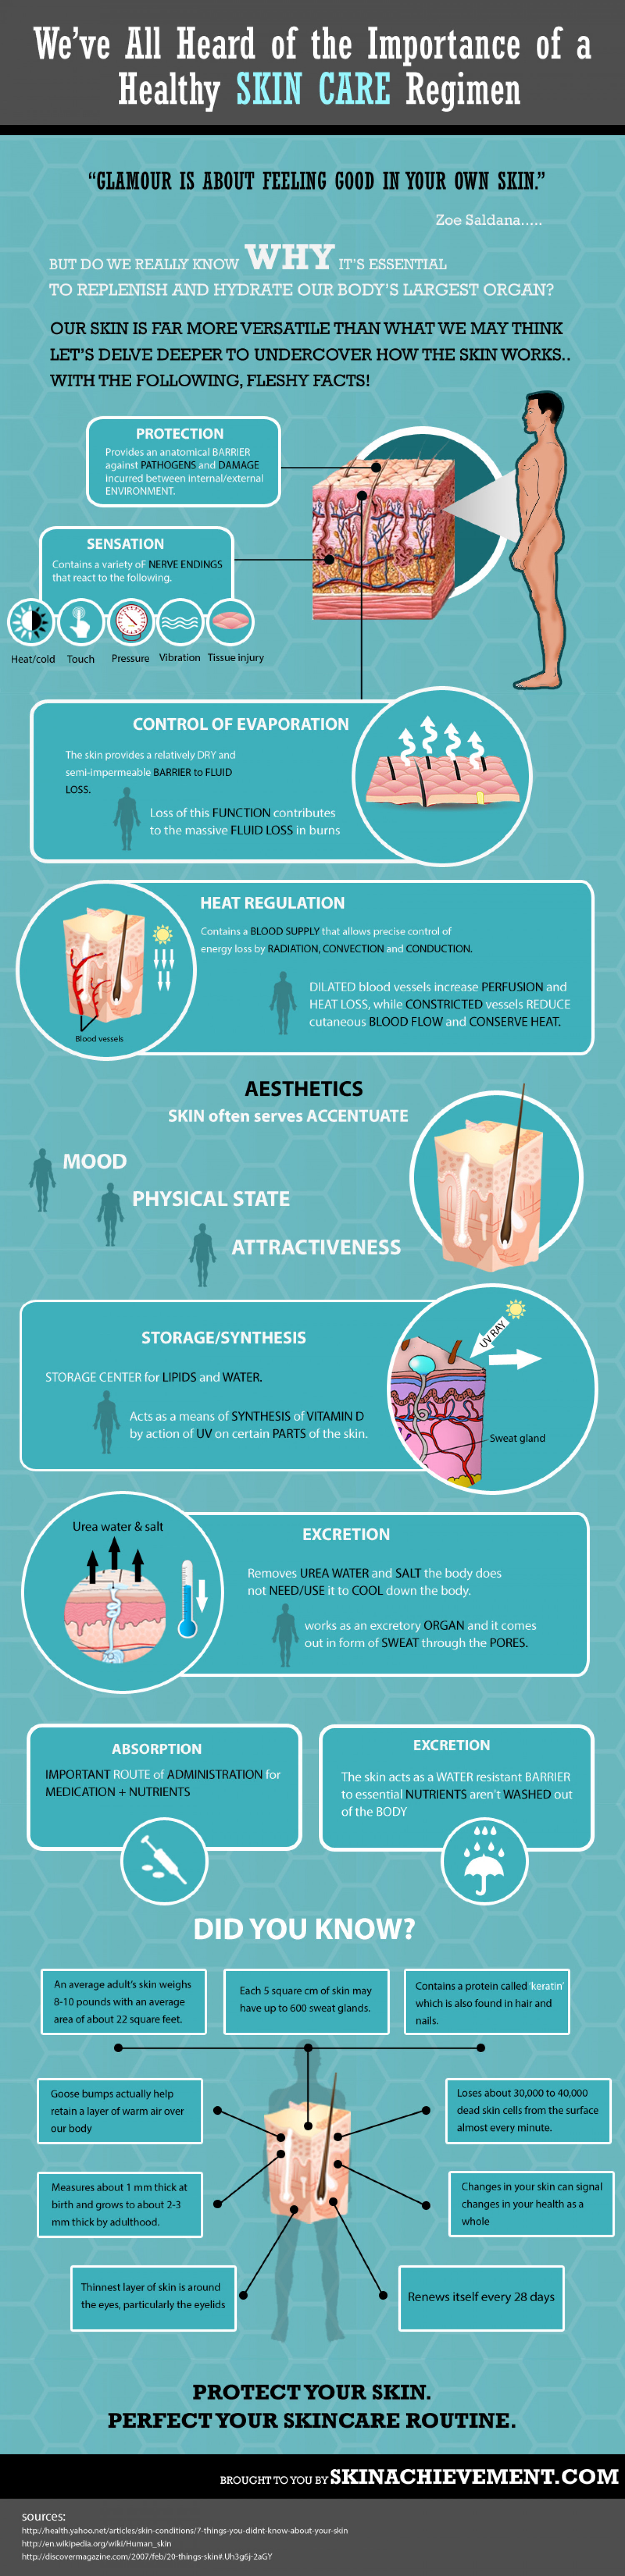 We've All Heard of the Importance of a Healthy SKIN CARE Regimen Infographic